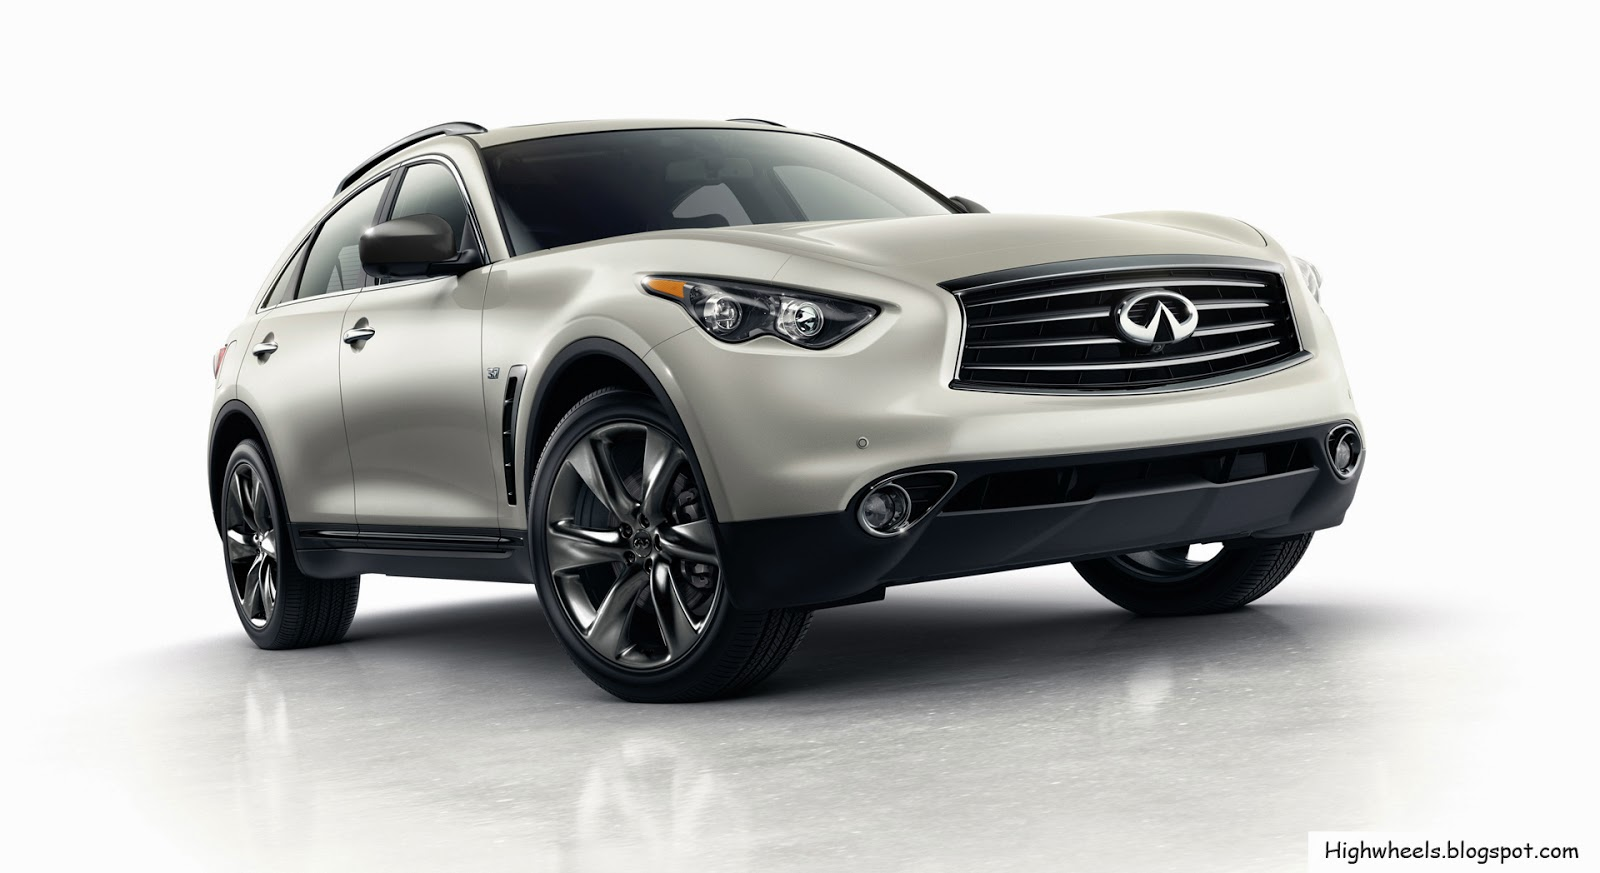 2015 infiniti qx70 high wheels. Black Bedroom Furniture Sets. Home Design Ideas